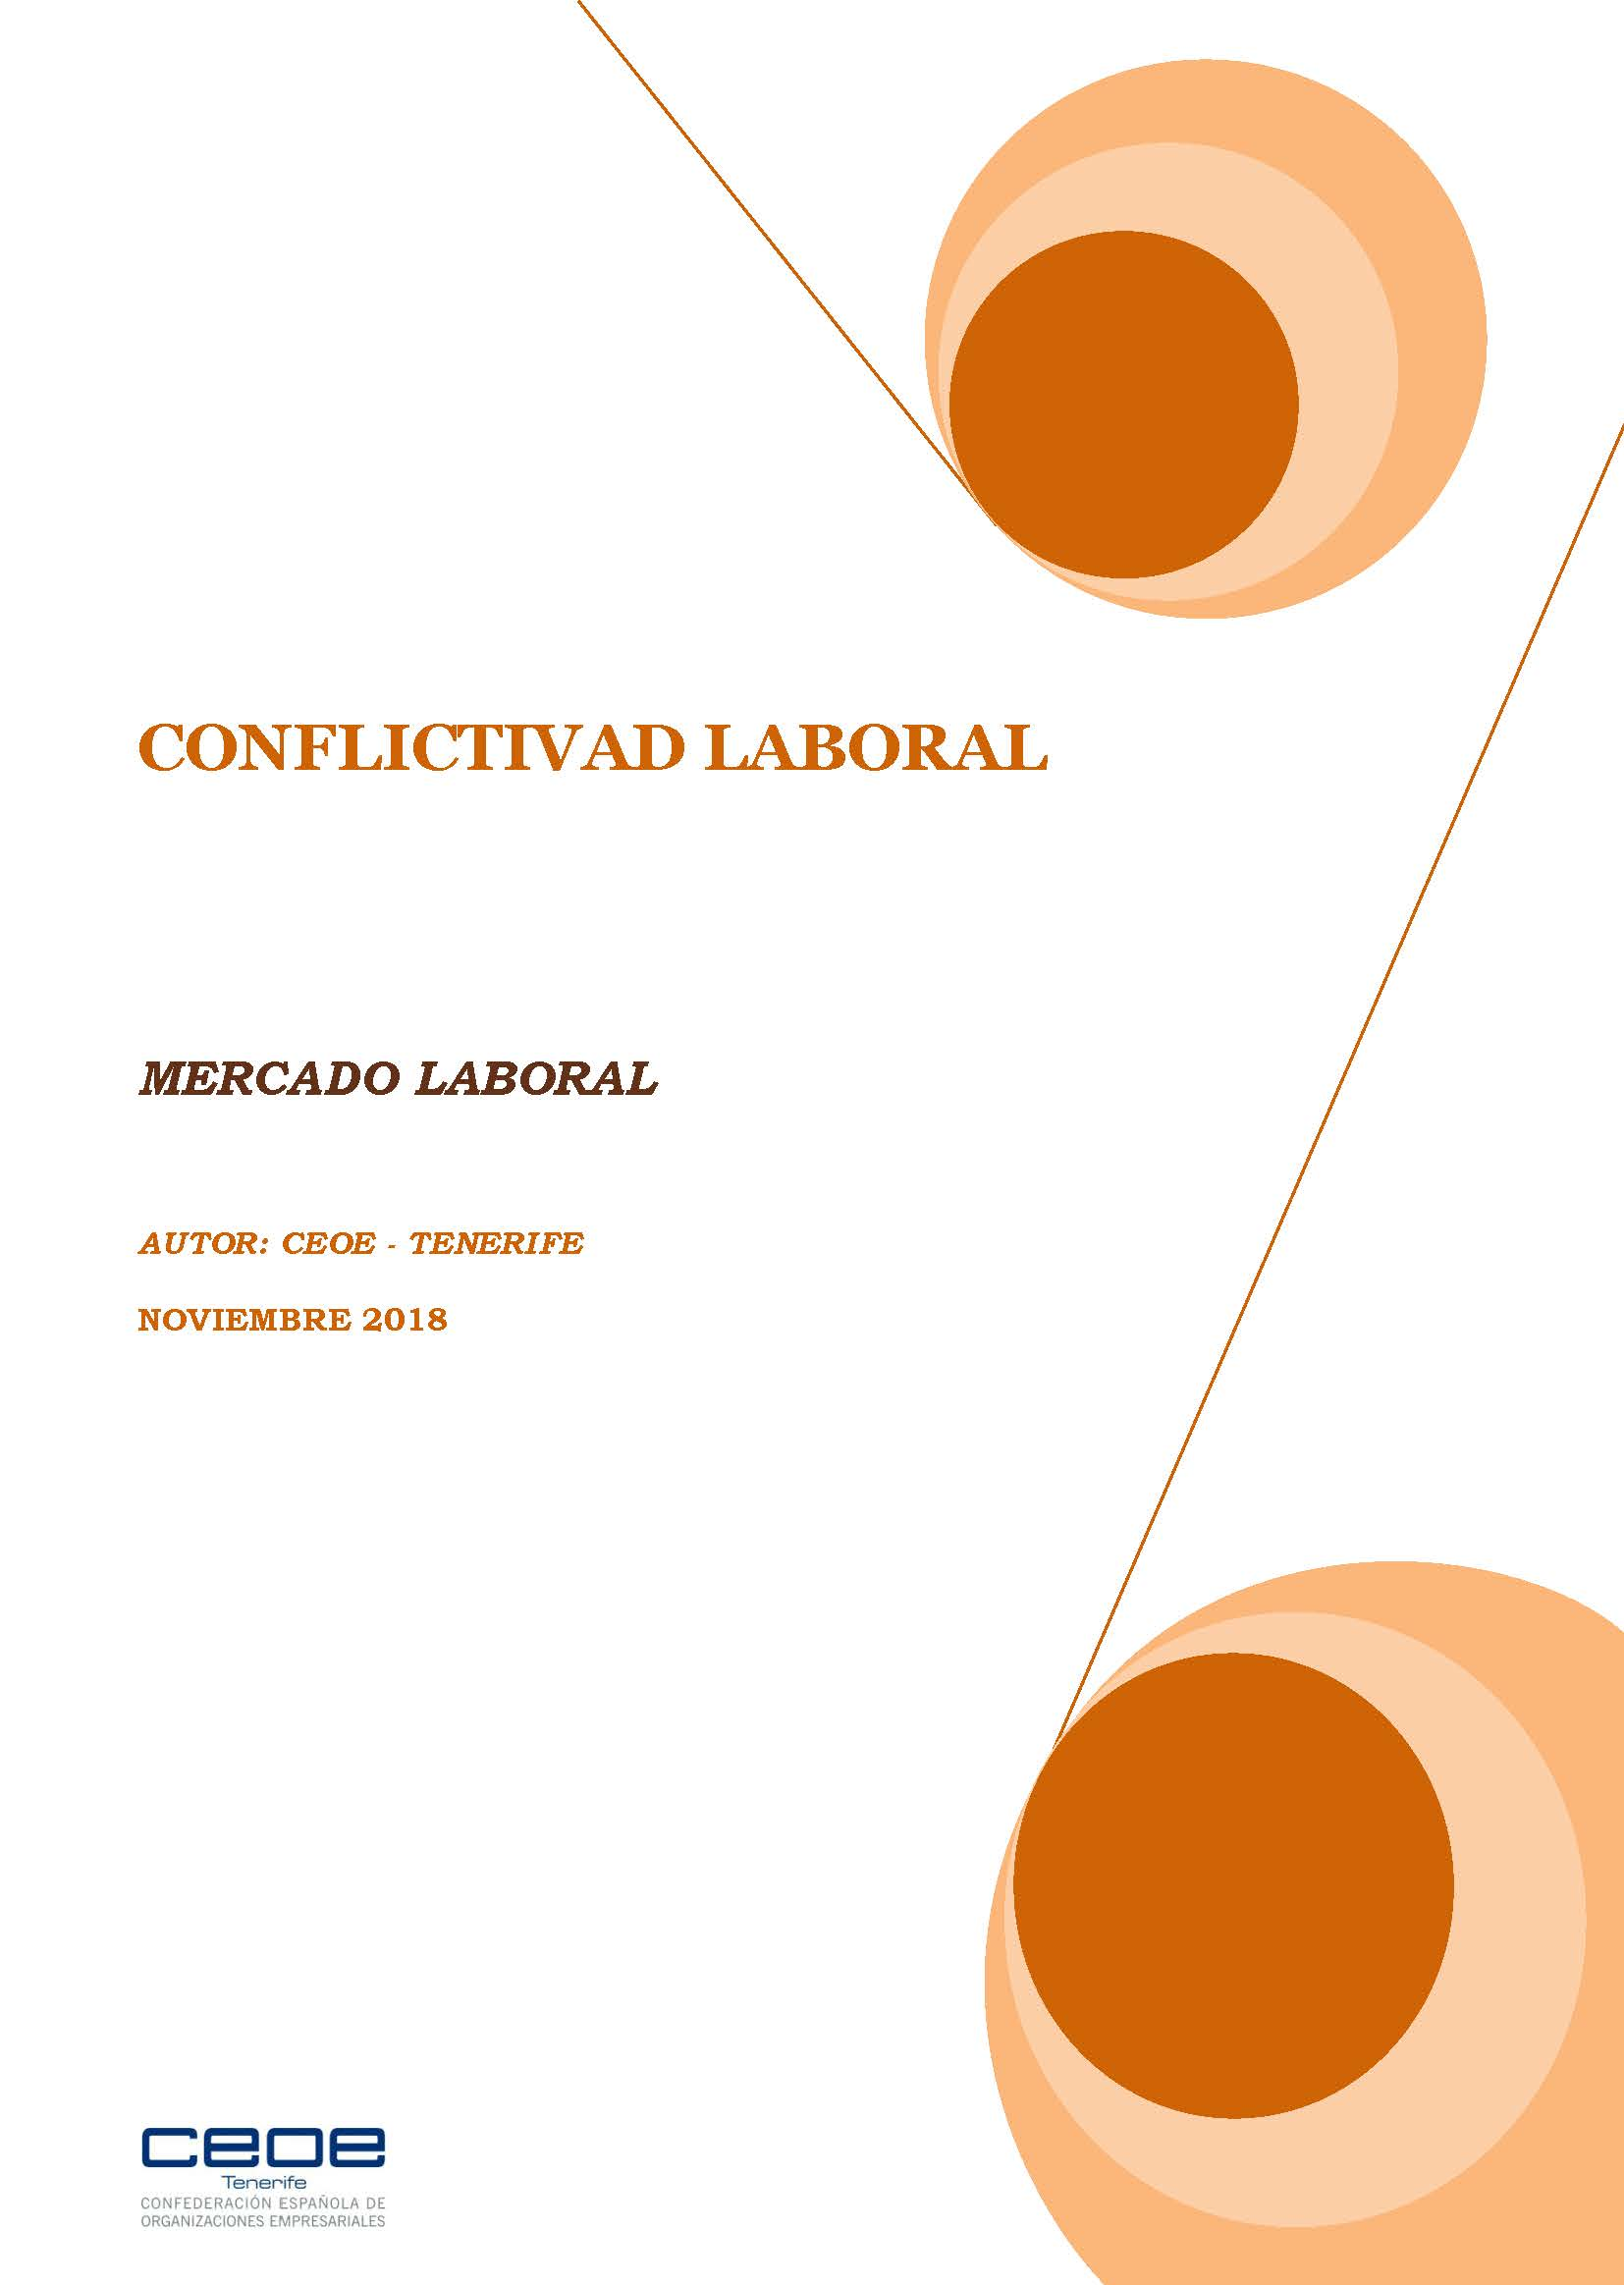 MERCADO LABORAL - CONFLICTIVIDAD LABORAL NOV 2018